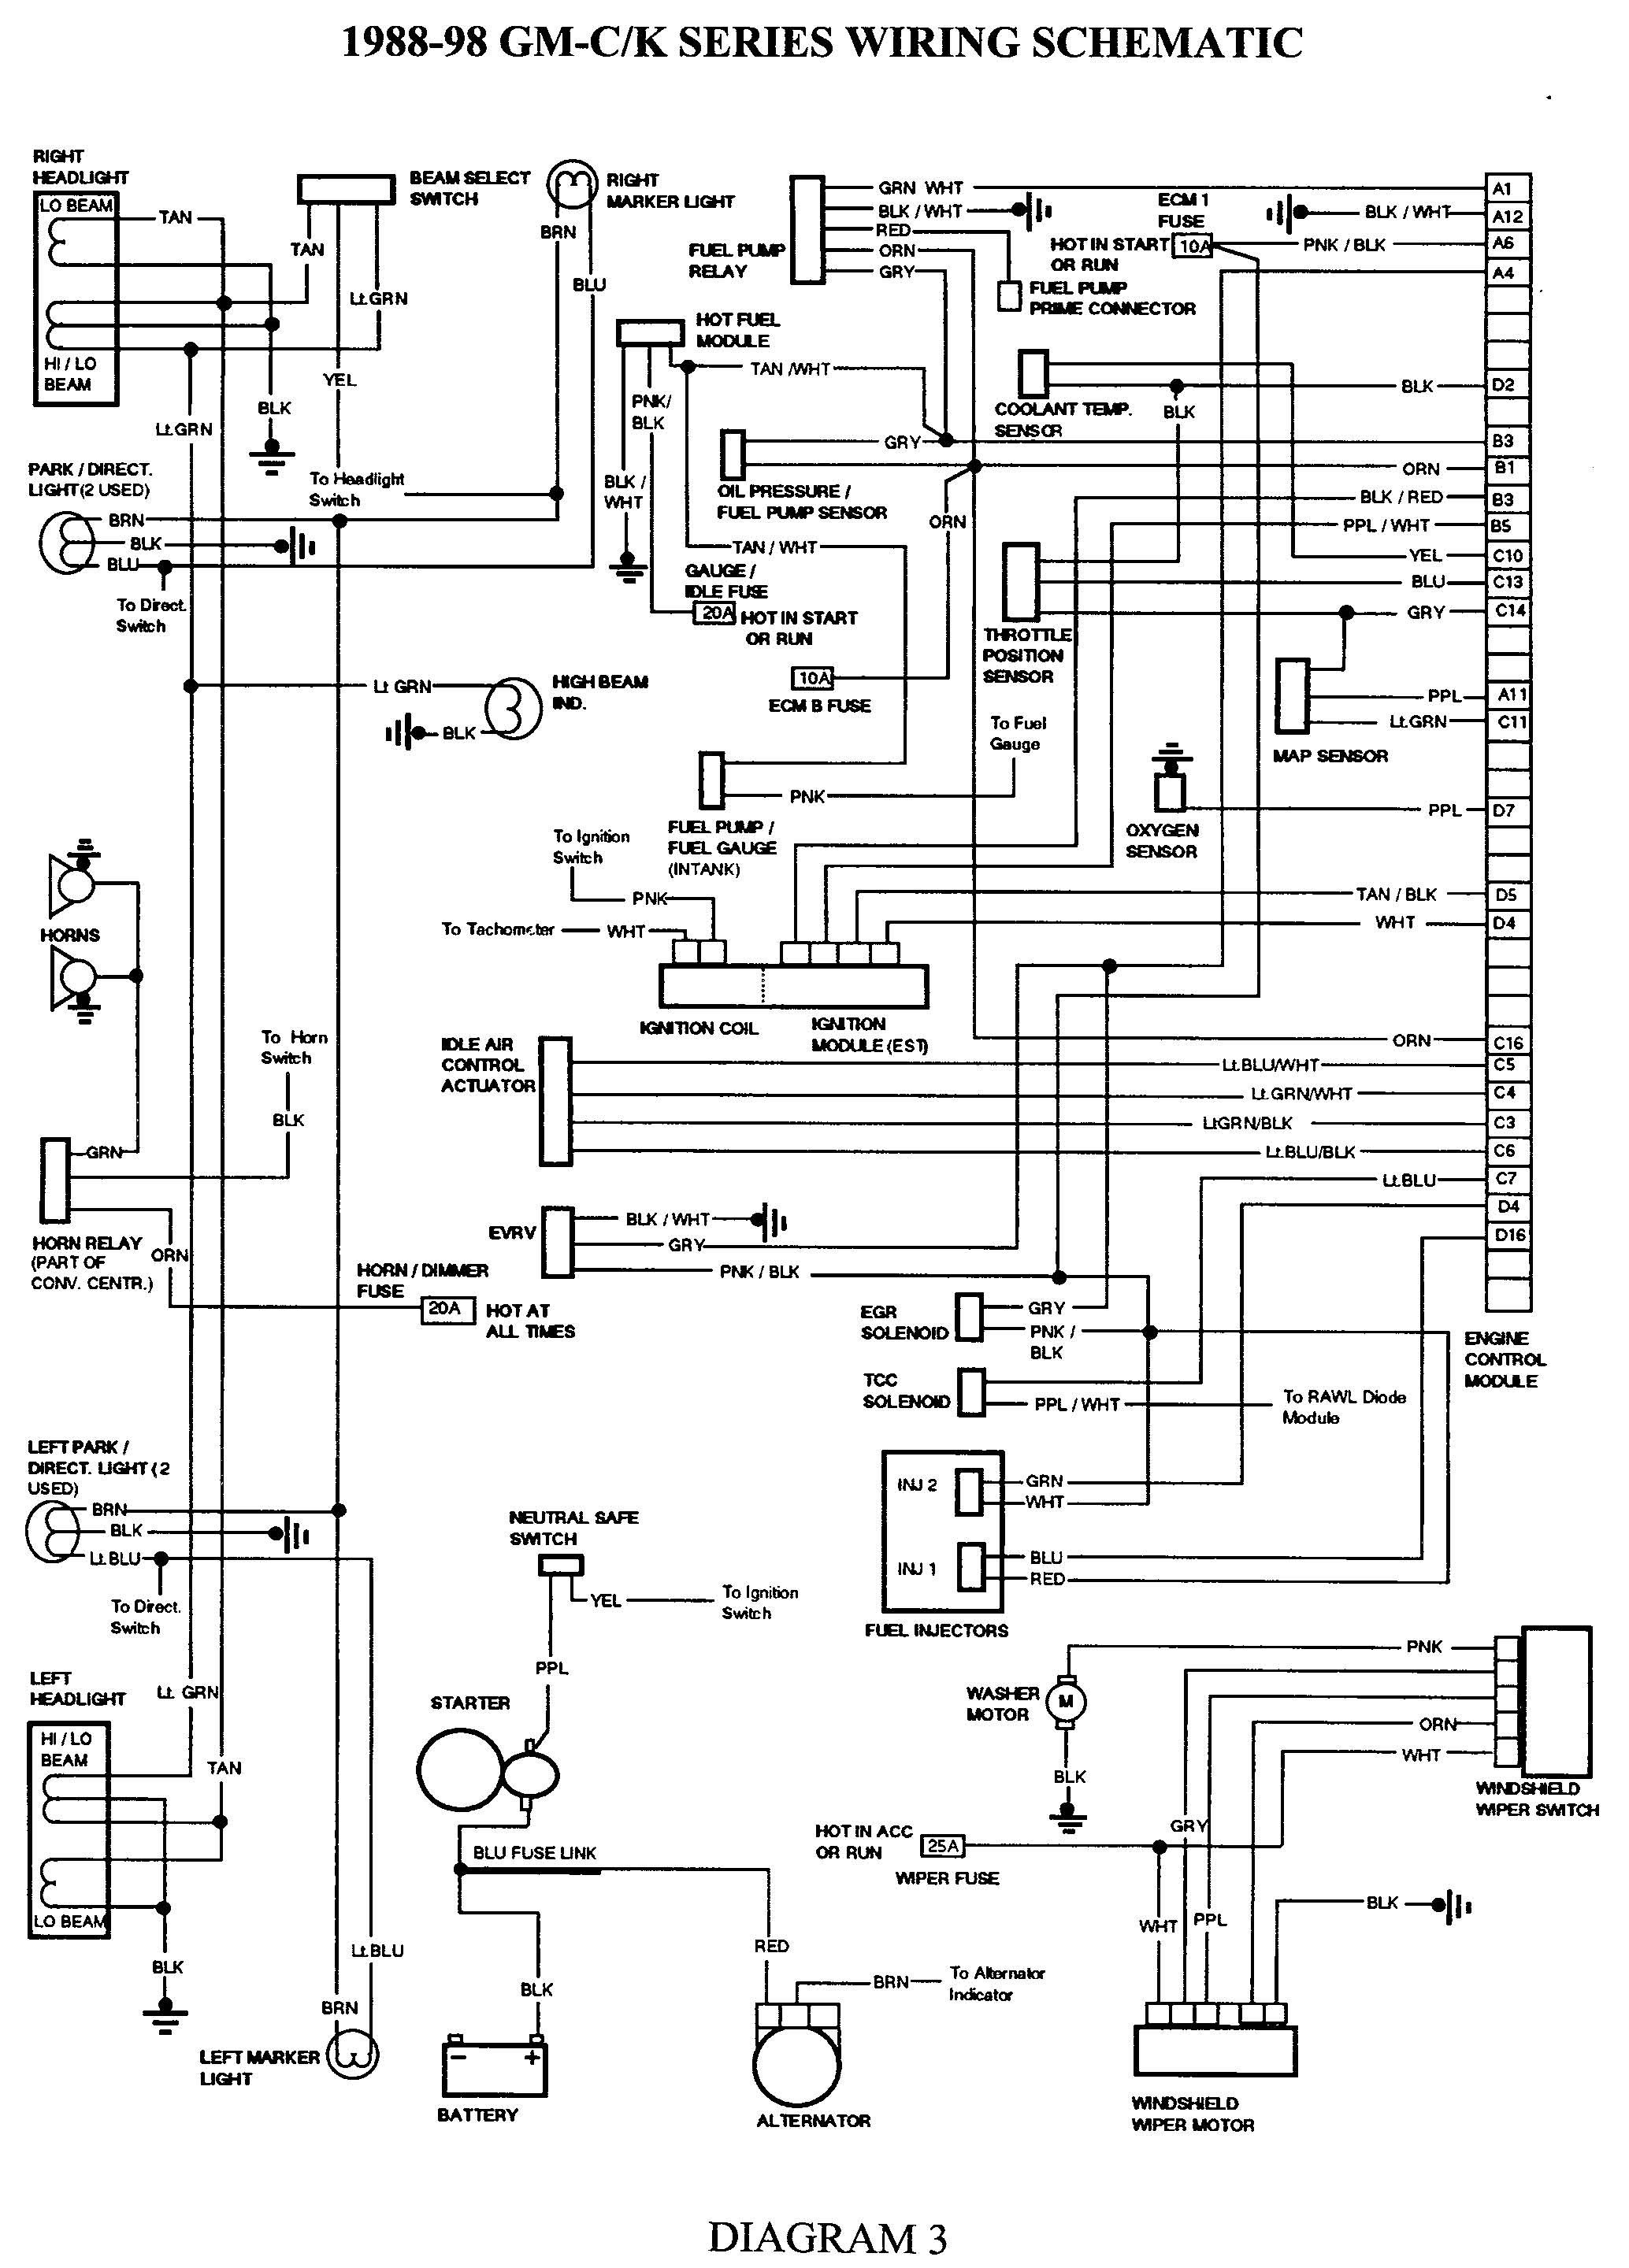 Gmc Truck Wiring Diagrams Awesome 5 7 Vortec Wiring Harness Diagram Diagram Of Gmc Truck Wiring Diagrams